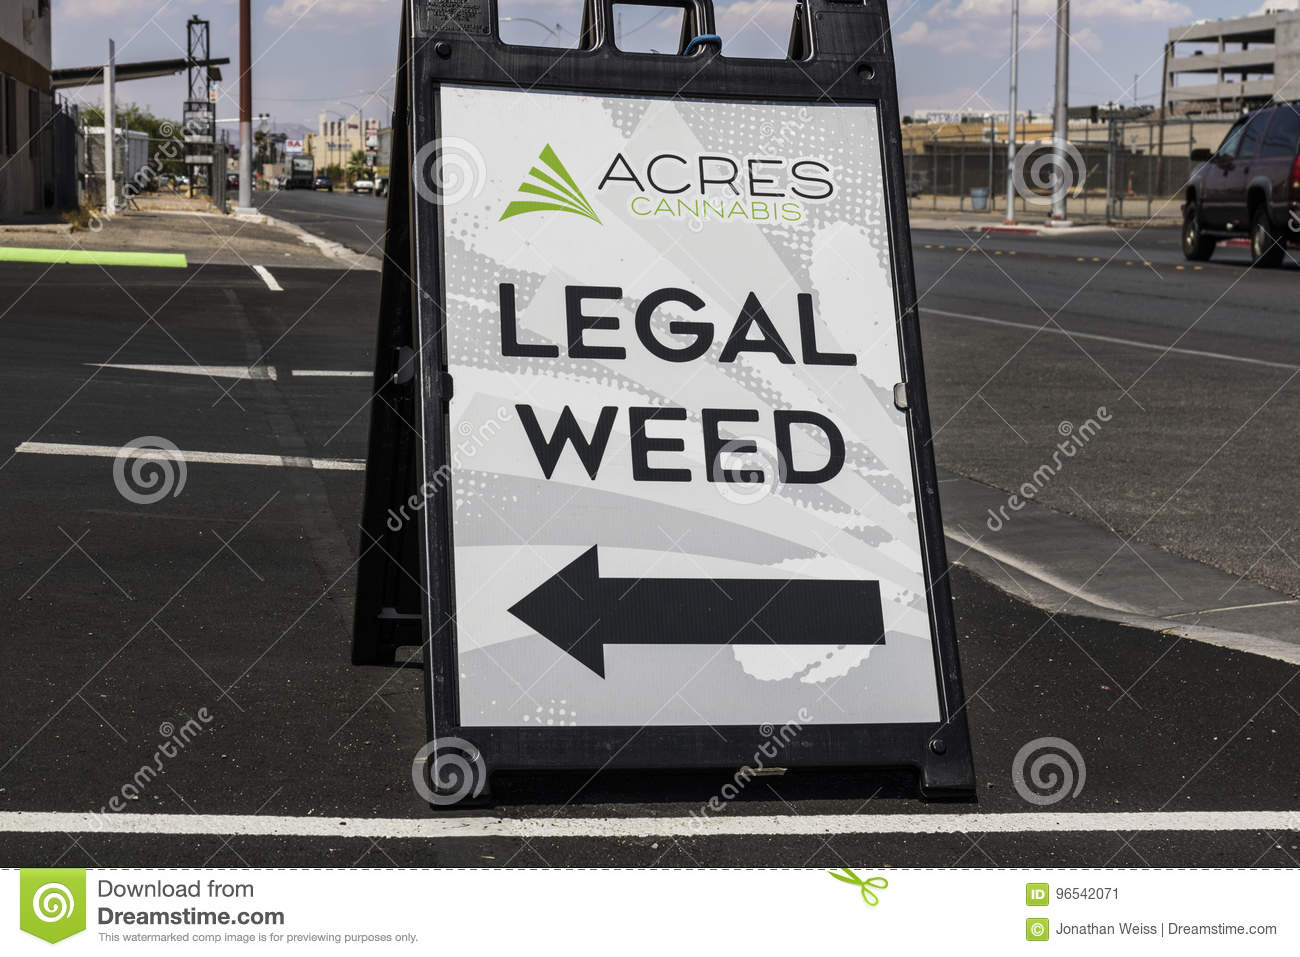 f17e0ede9 Acres Cannabis Marijuana Store Dispensary. As of 2017, Recreational Pot is  legal in Nevada VI